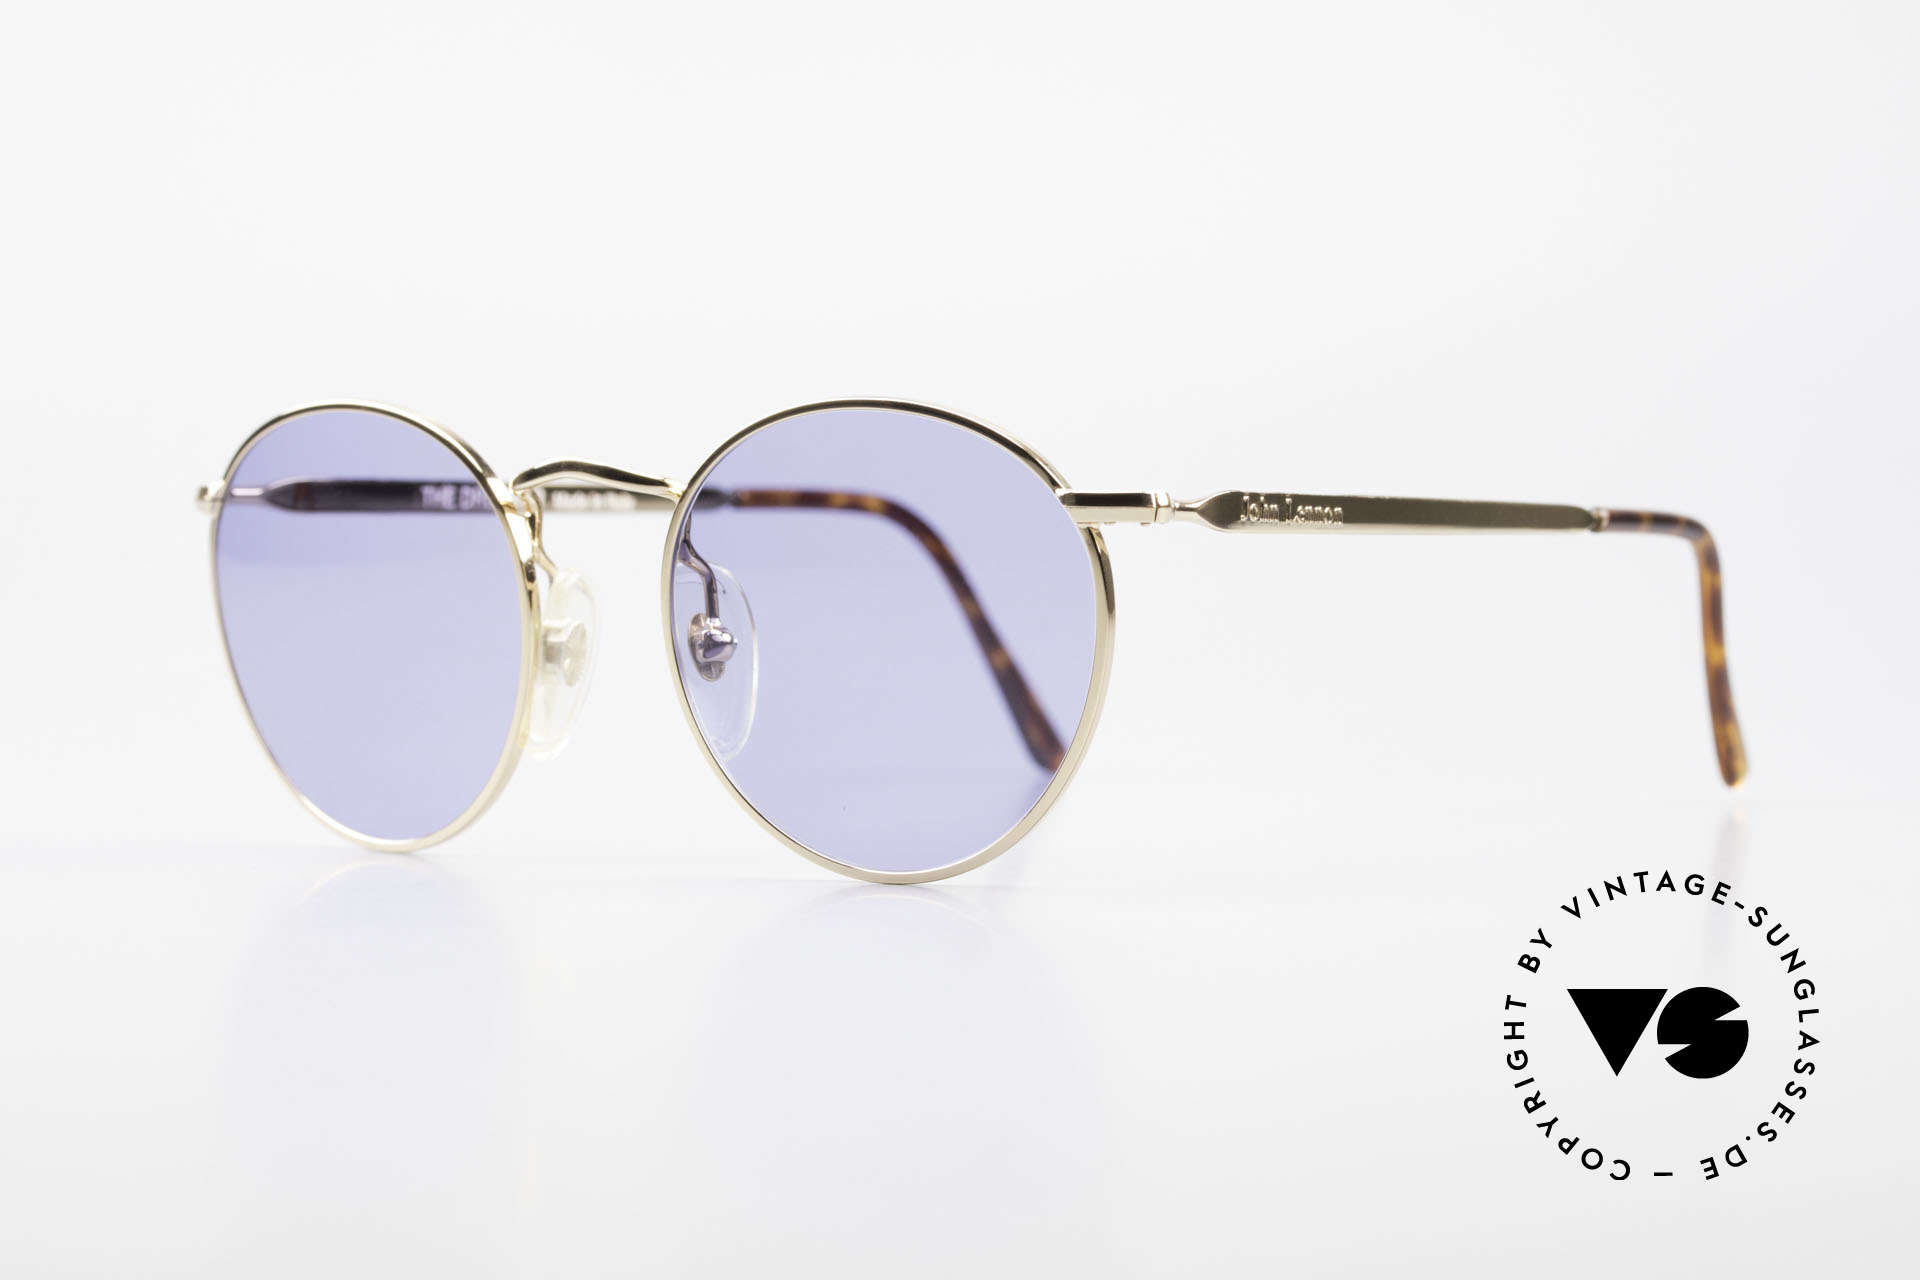 John Lennon - The Dreamer Extra Small Vintage Shades, all models named after famous J.Lennon / Beatles songs, Made for Men and Women